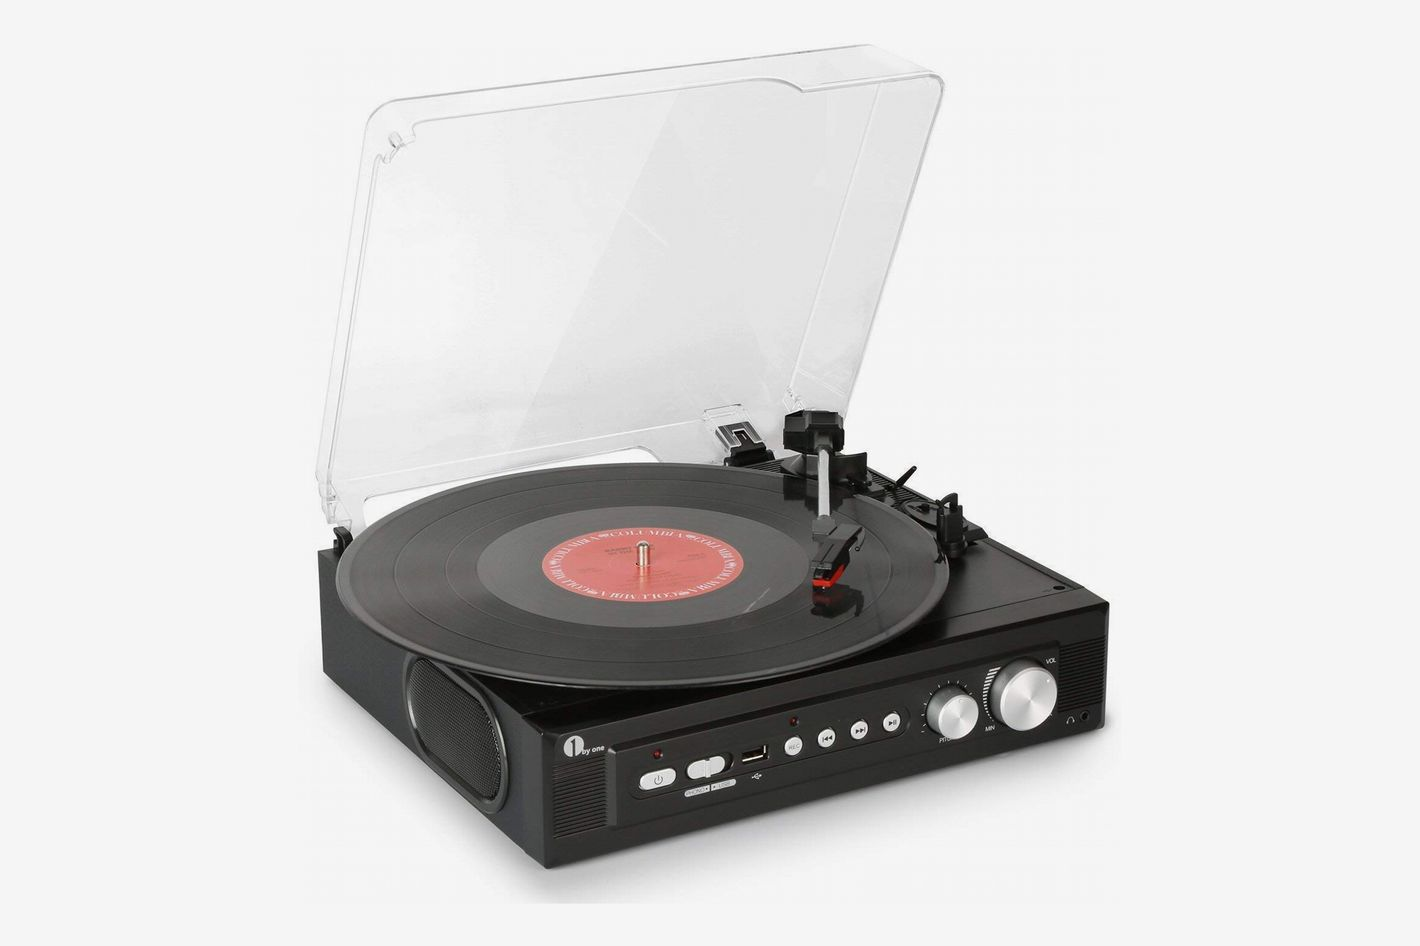 1byone Belt-Drive 3-Speed Mini Stereo Turntable with Built in Speakers